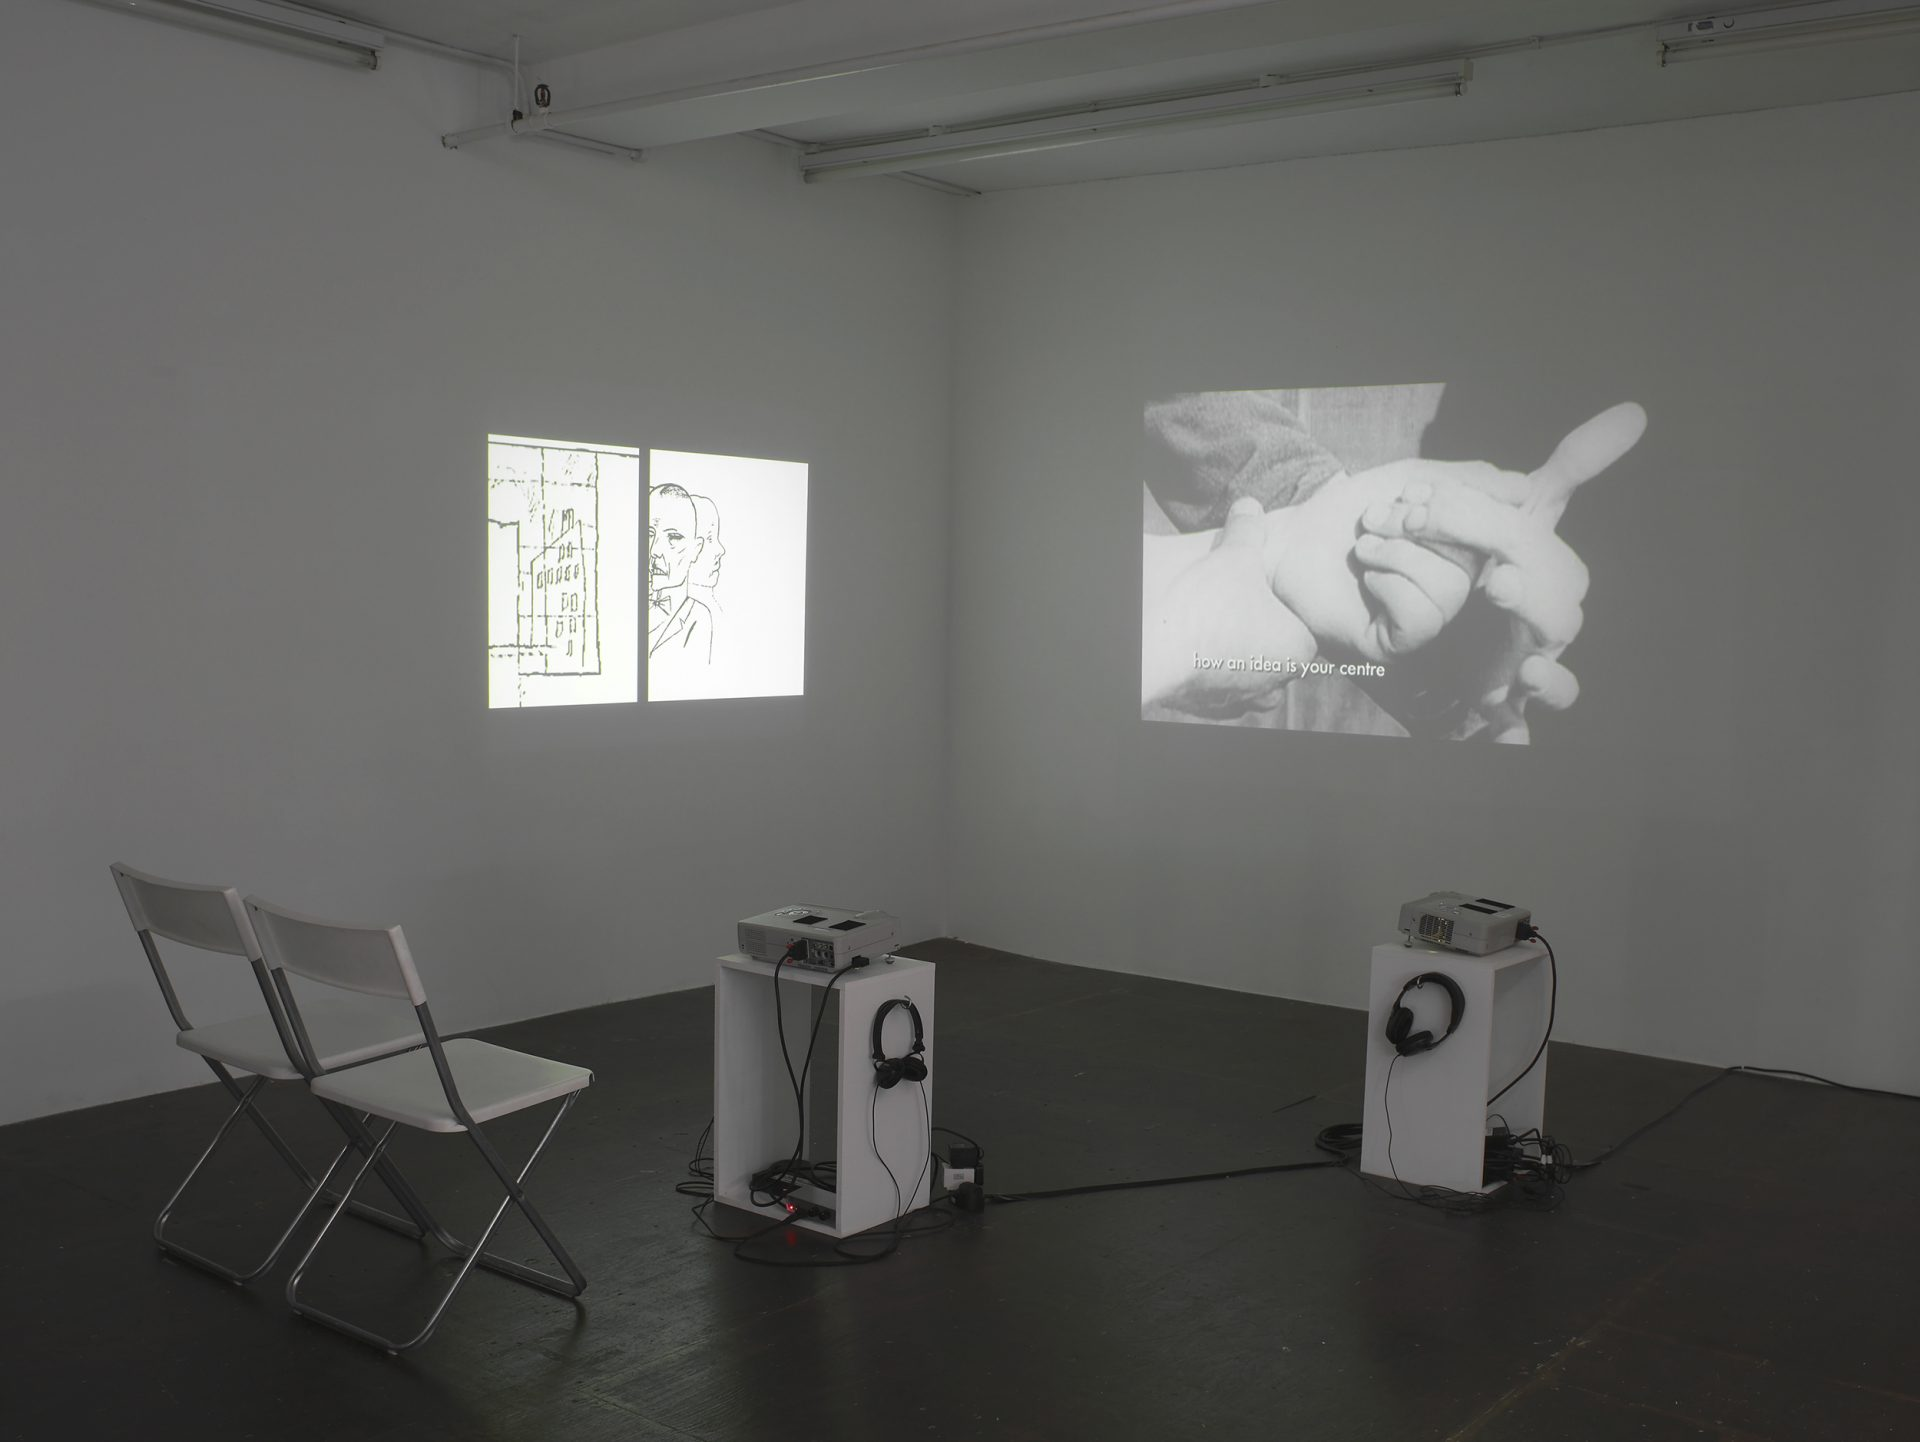 Falke Pisano: Disordered Bodies Fractured Minds, 2012